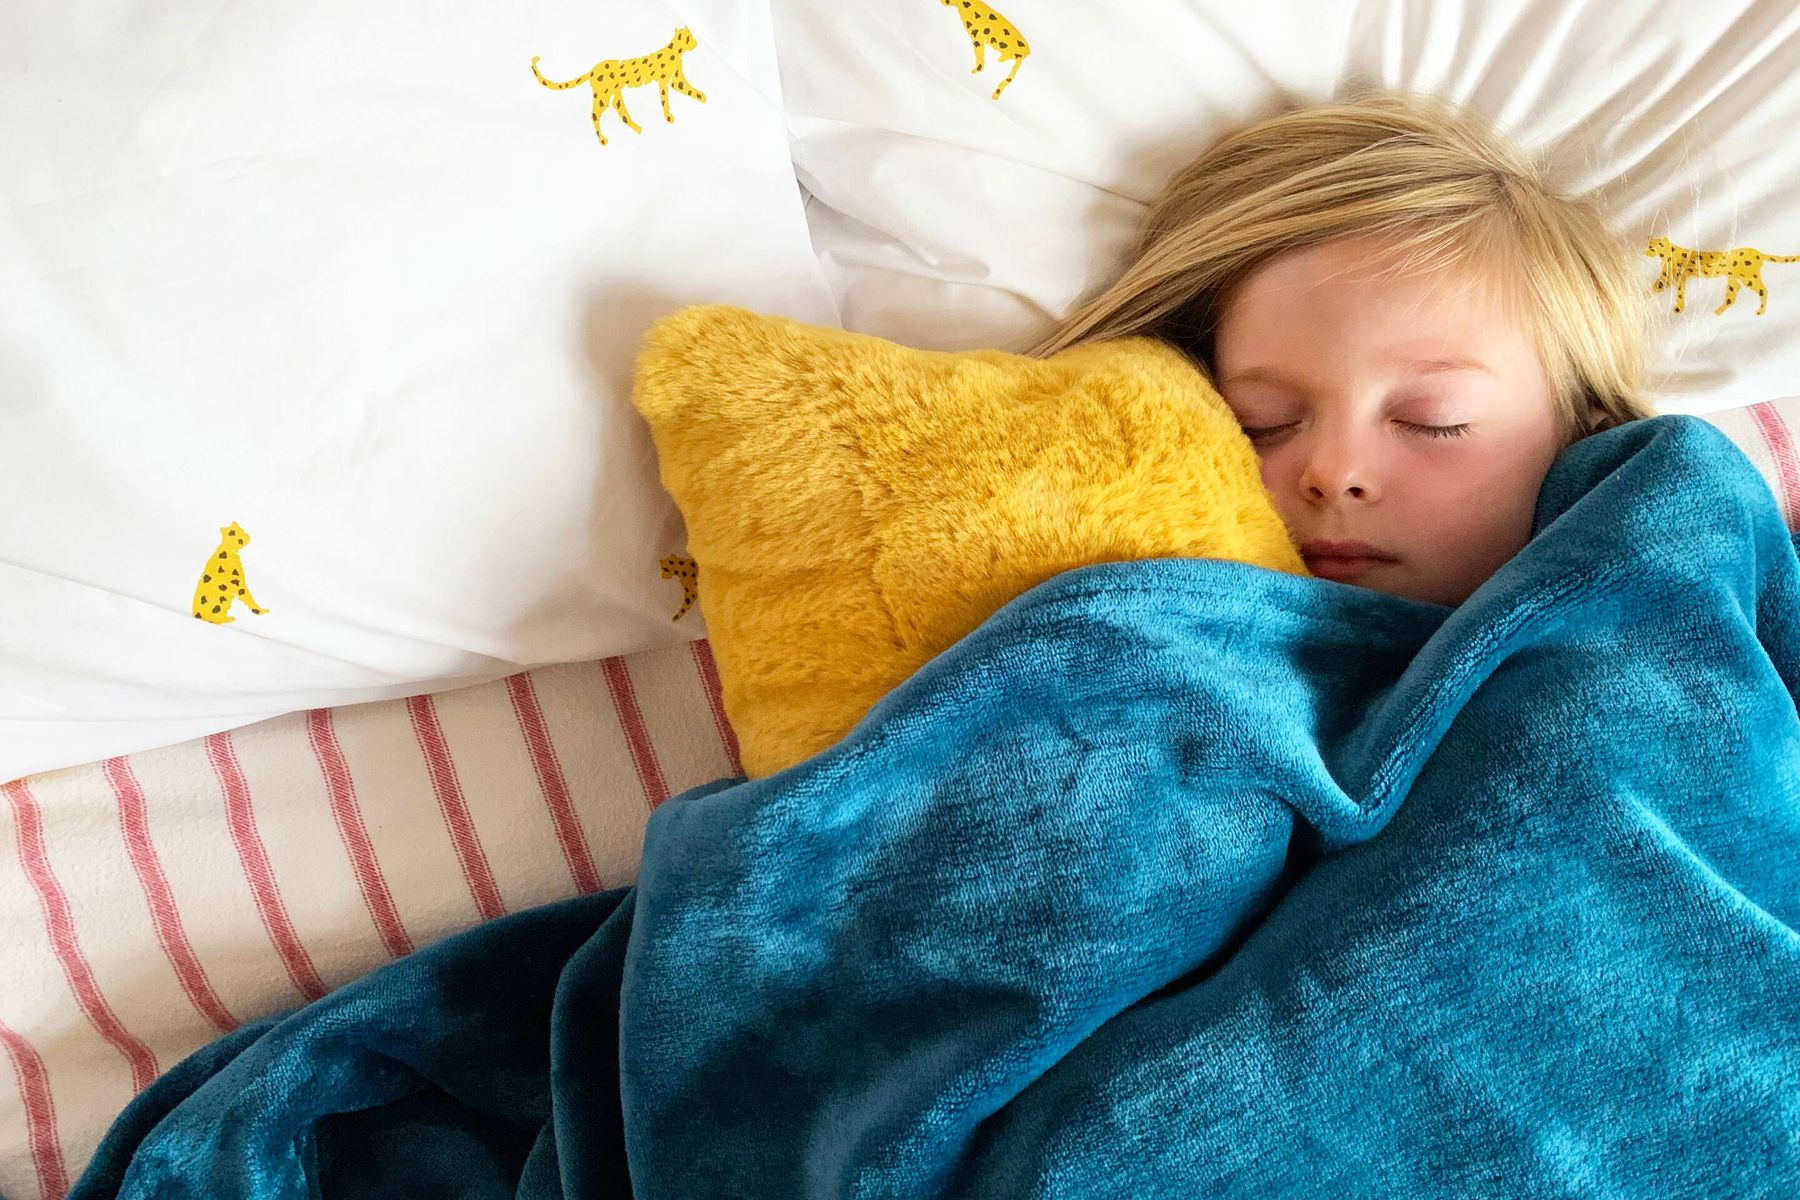 child sleeping in a cozy bed